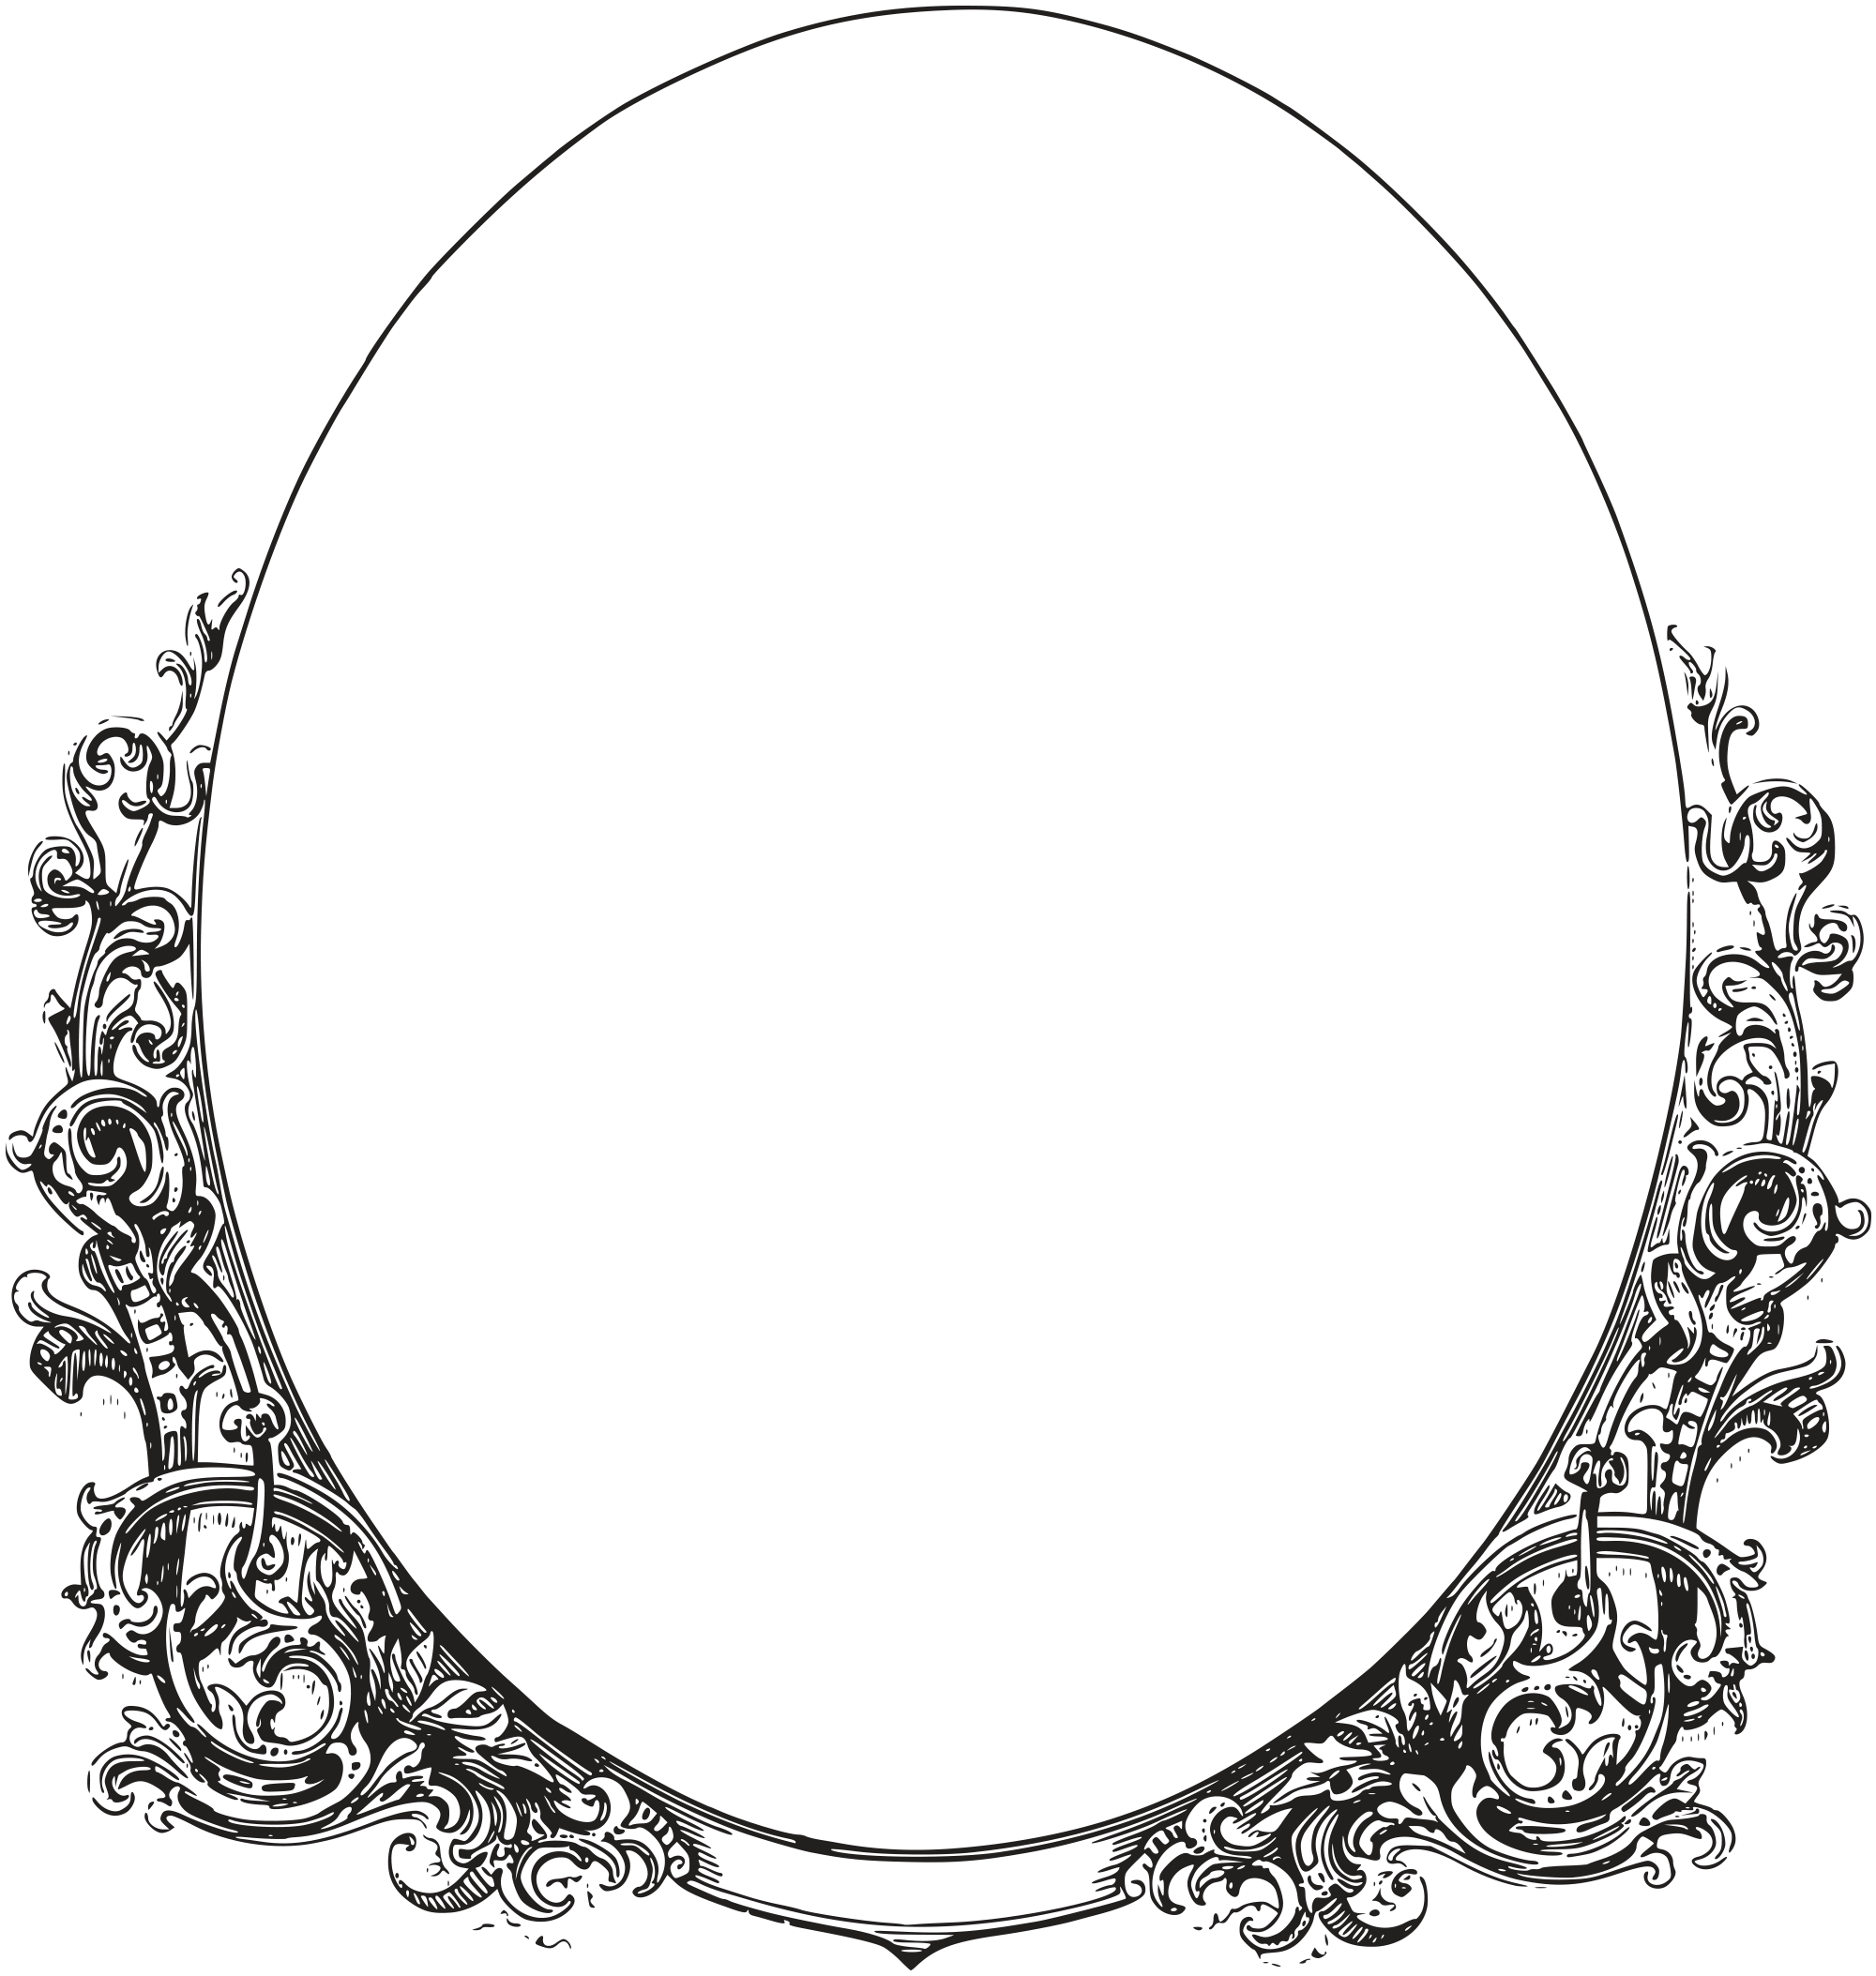 Royalty Free Images - Ornate Oval Frame Border | Oh So ...